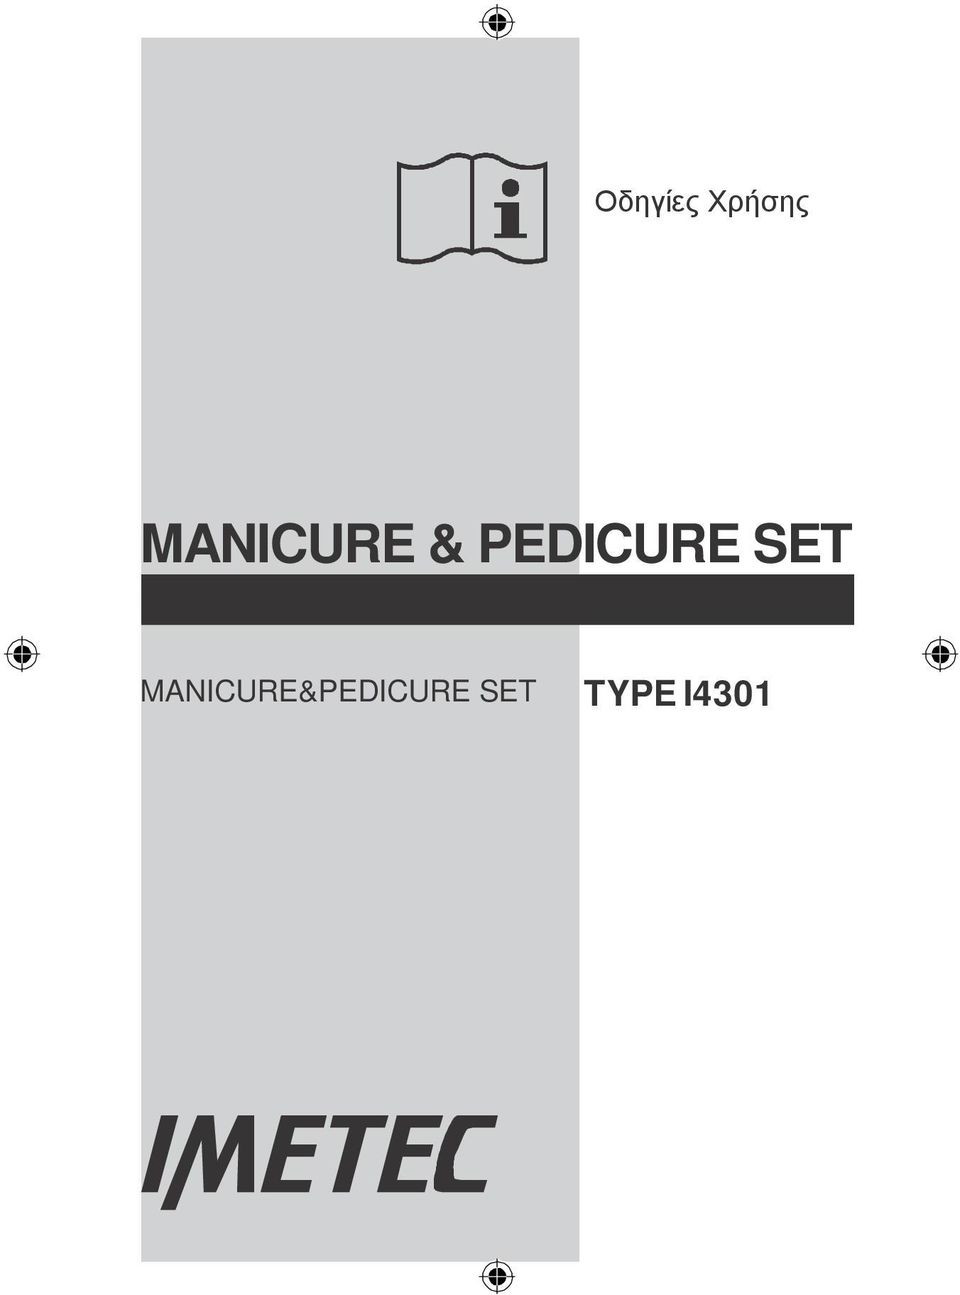 PEDICURE SET